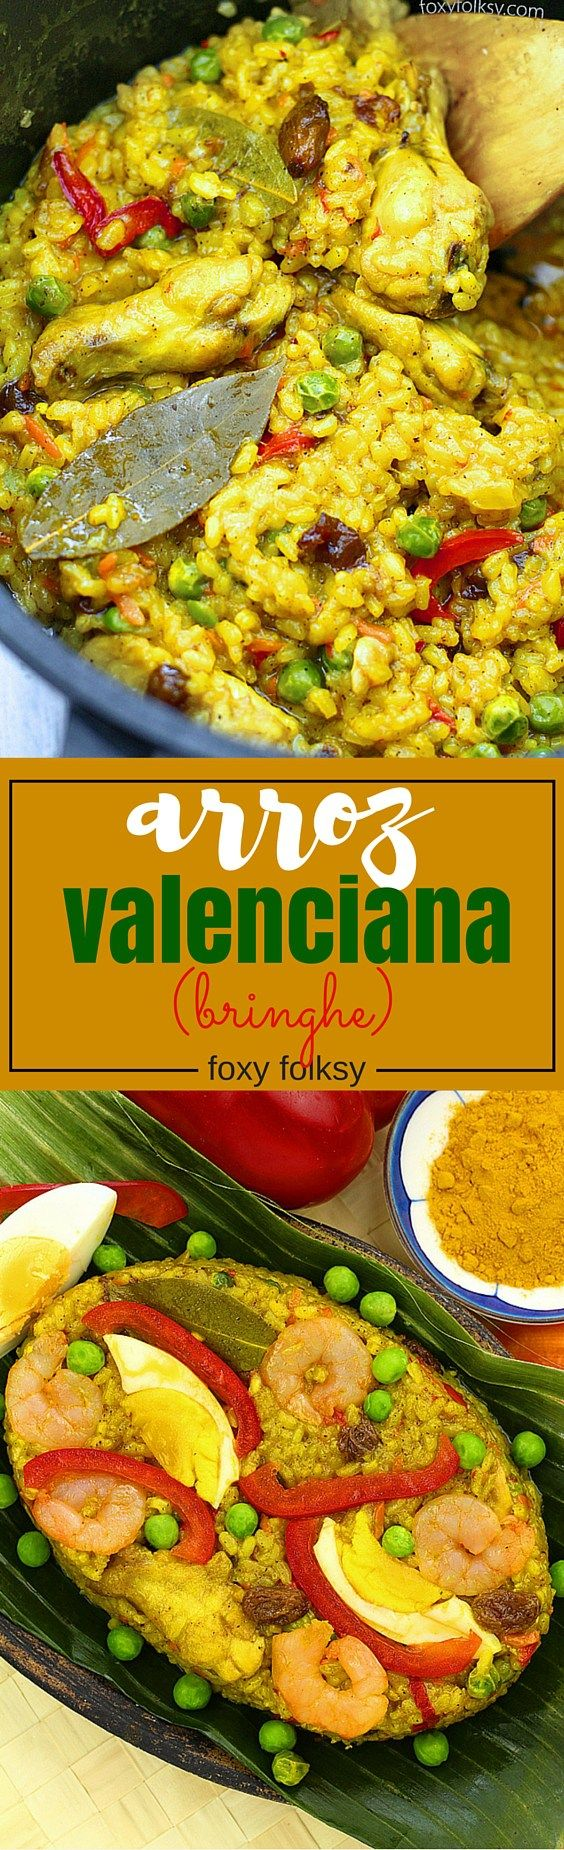 58 best recipes images on pinterest filipino food filipino arroz valenciana or bringhe is a flavorful all in one filipino dish from glutinous forumfinder Gallery